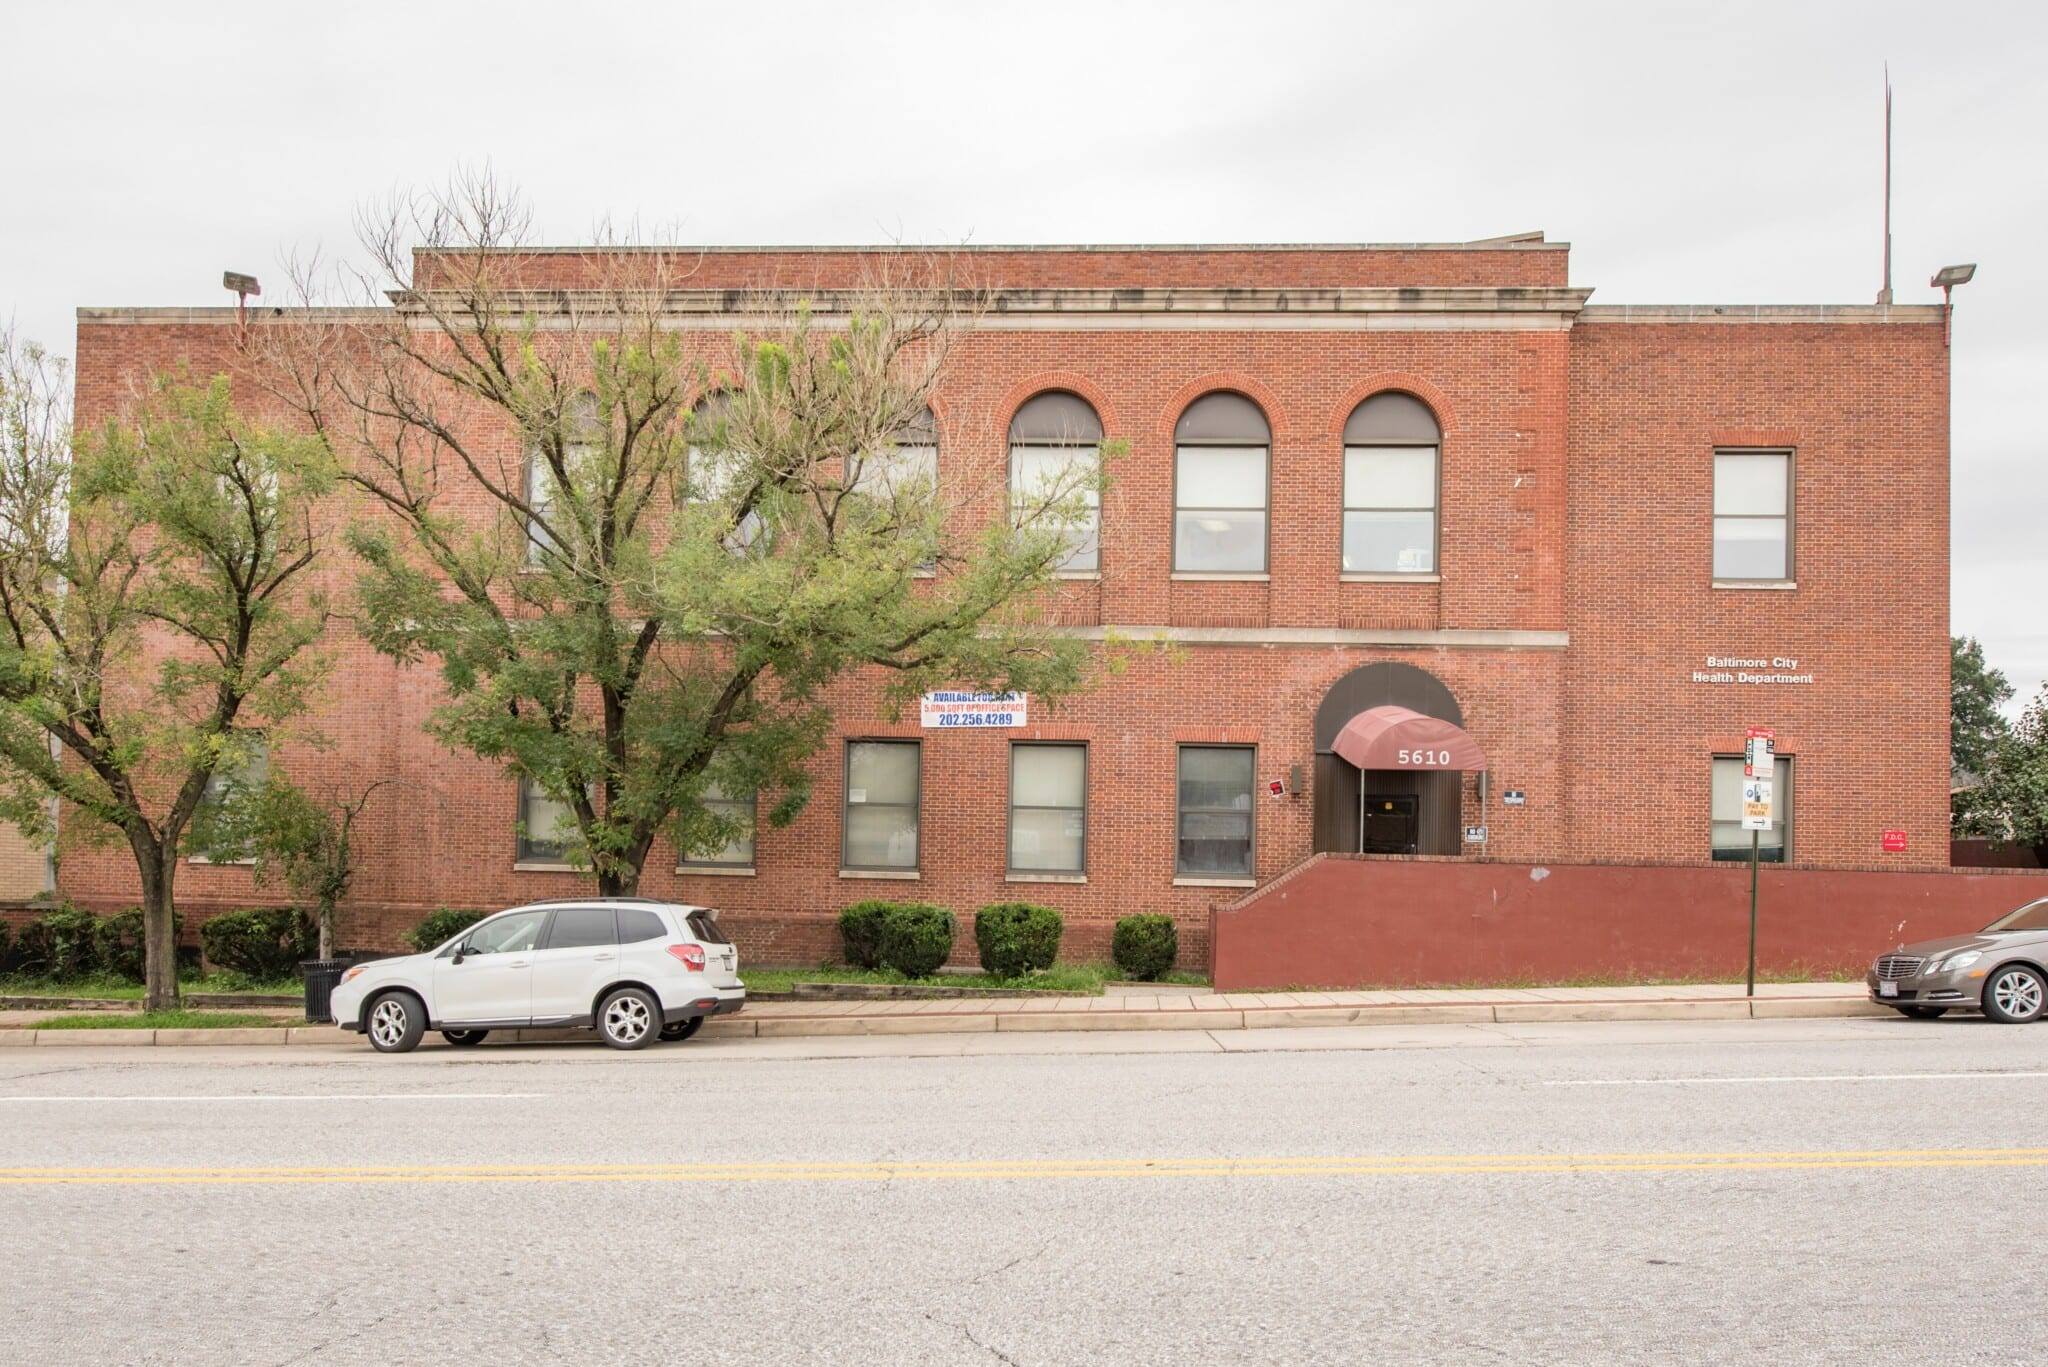 5610 Harford Rd: 15,000 sq. ft. office building, 10.17% cap rate